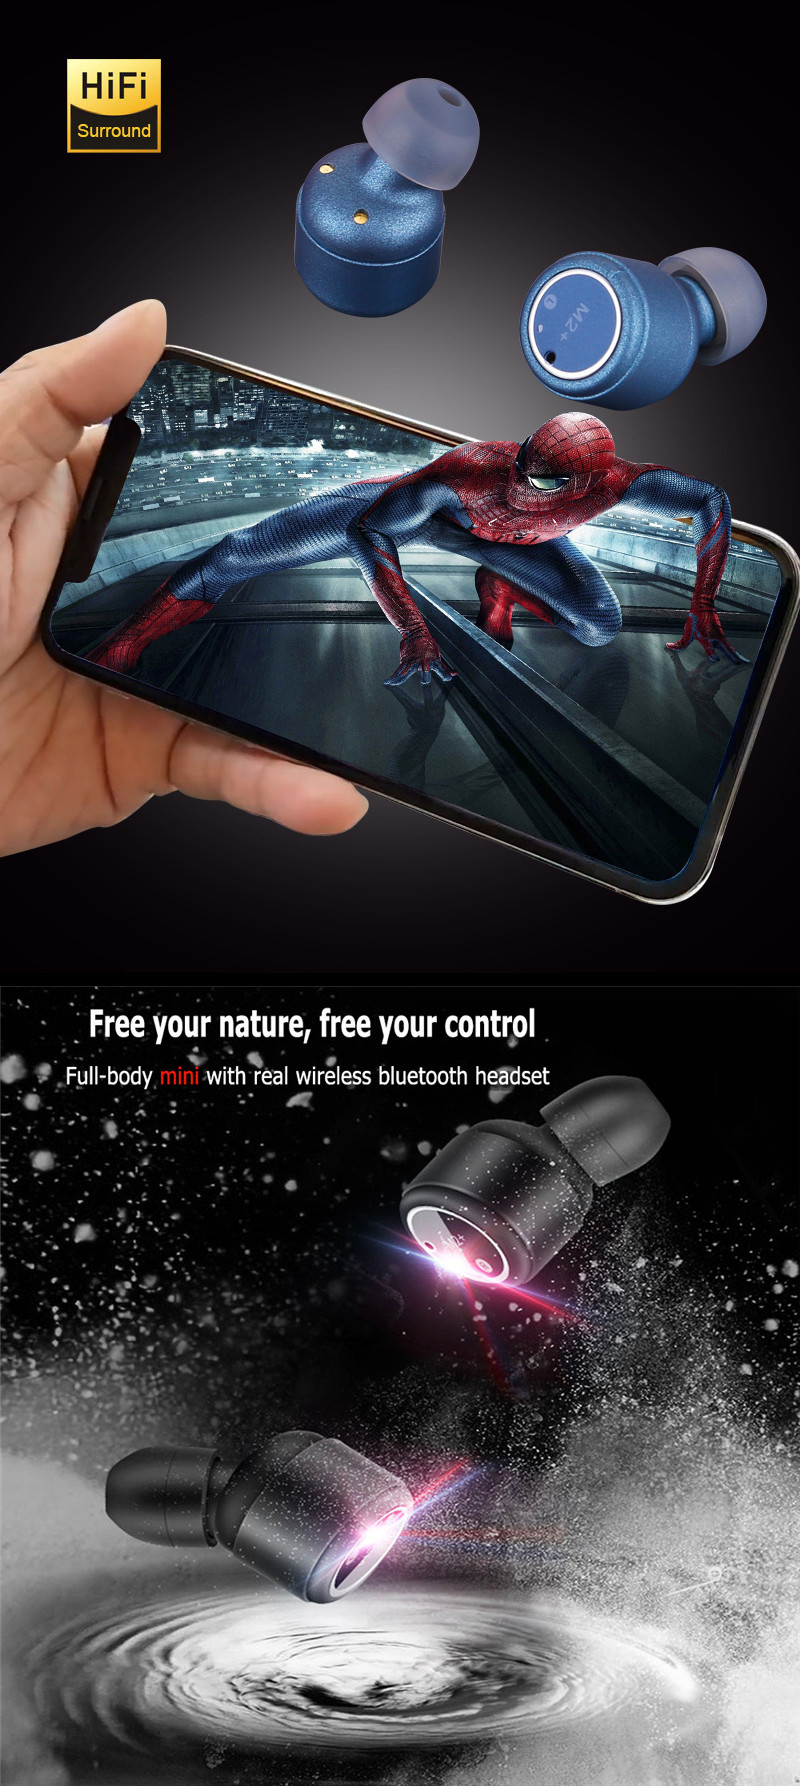 Bakeey M2+ Touch Control True Wireless Dual bluetooth 5.0 Earbuds Stereo Waterproof Binaural Call Cordless Handsfree Earphone With Rotating Charging Box for Iphone X XS Xiaomi